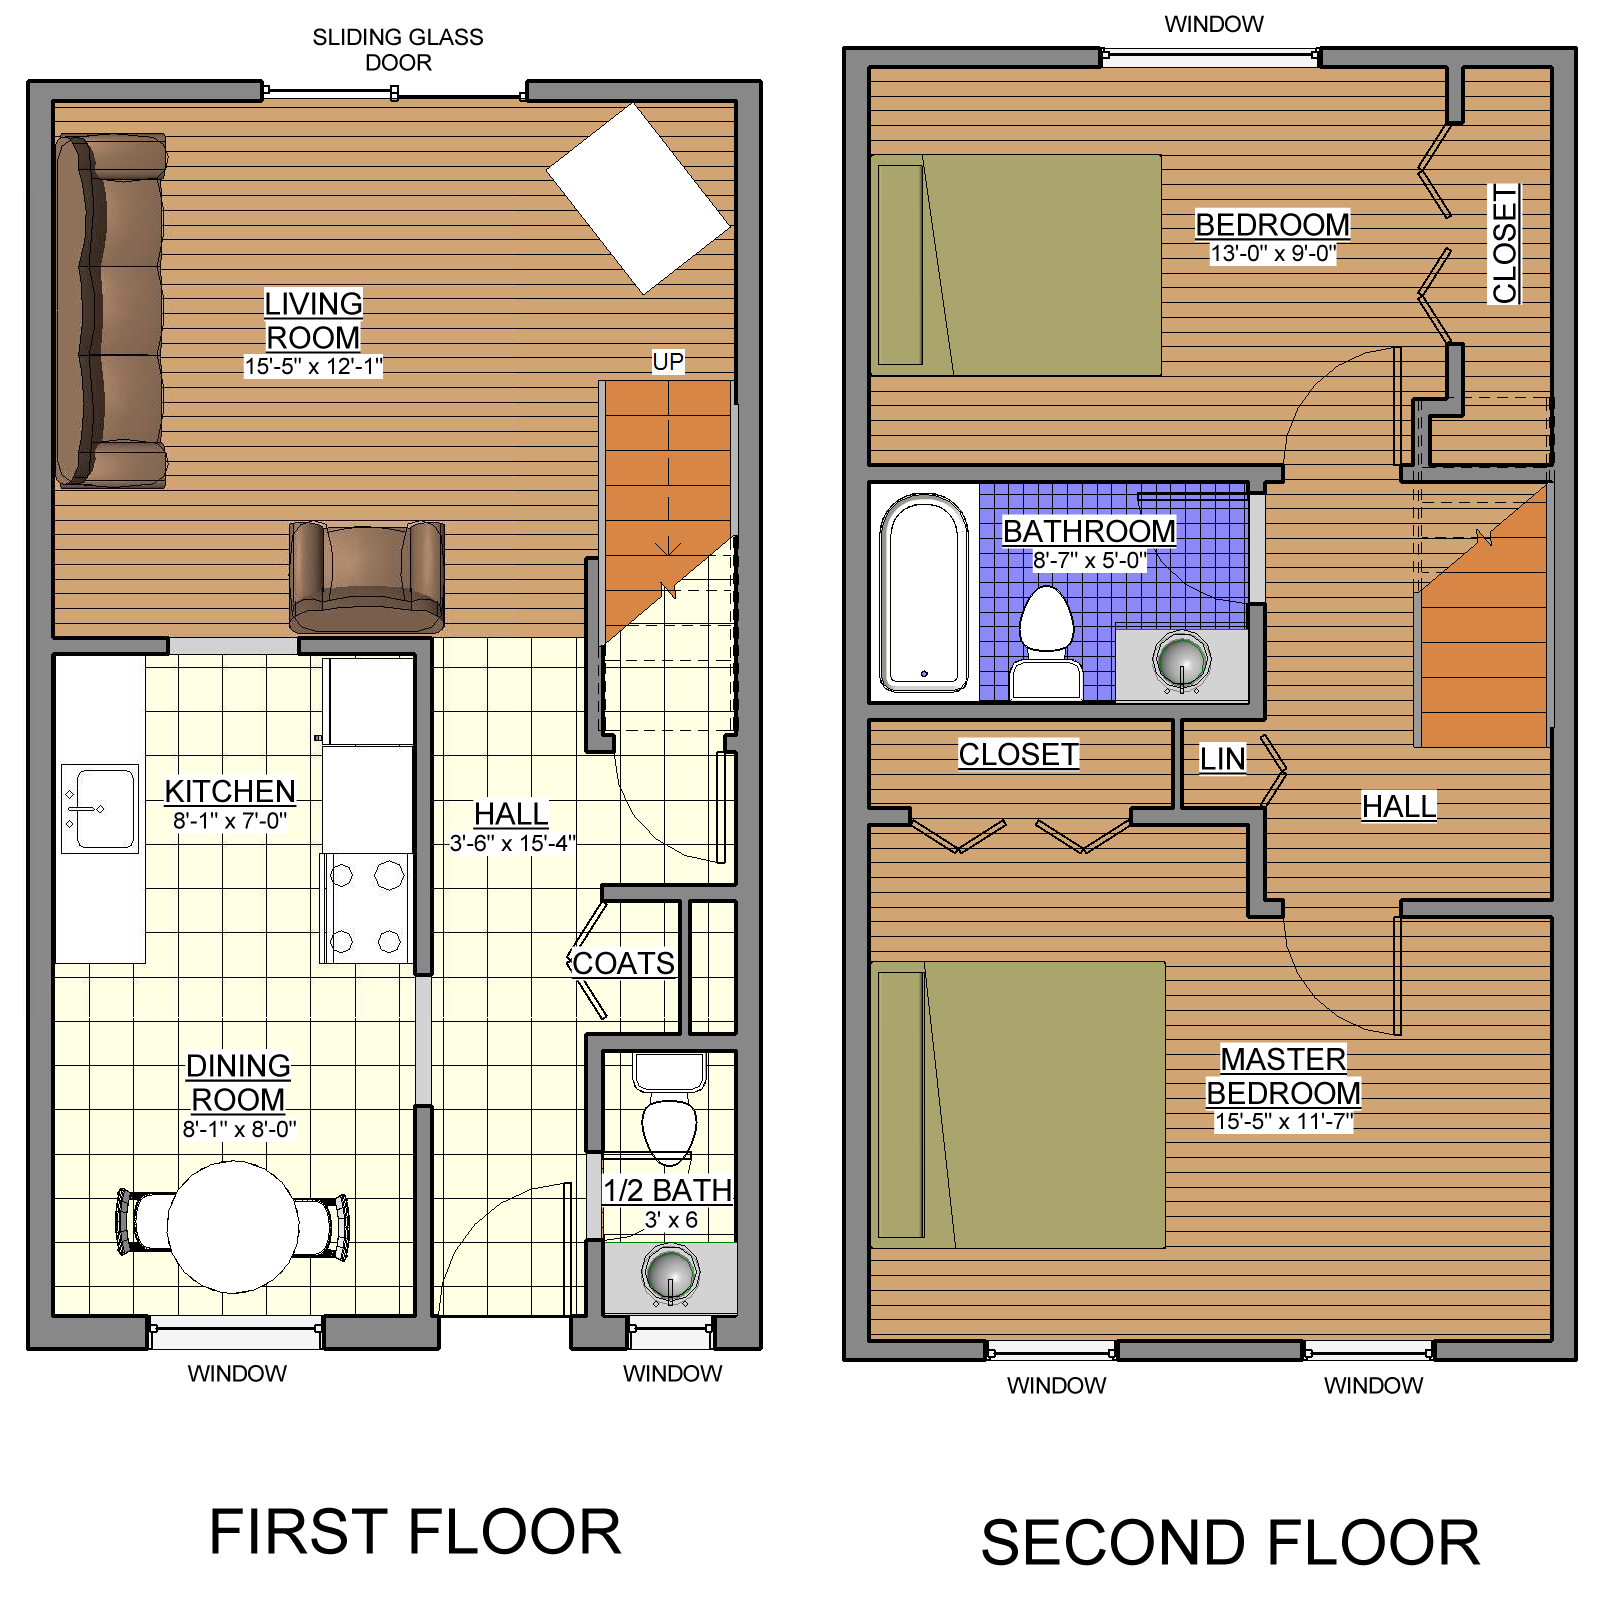 floorplan2bed